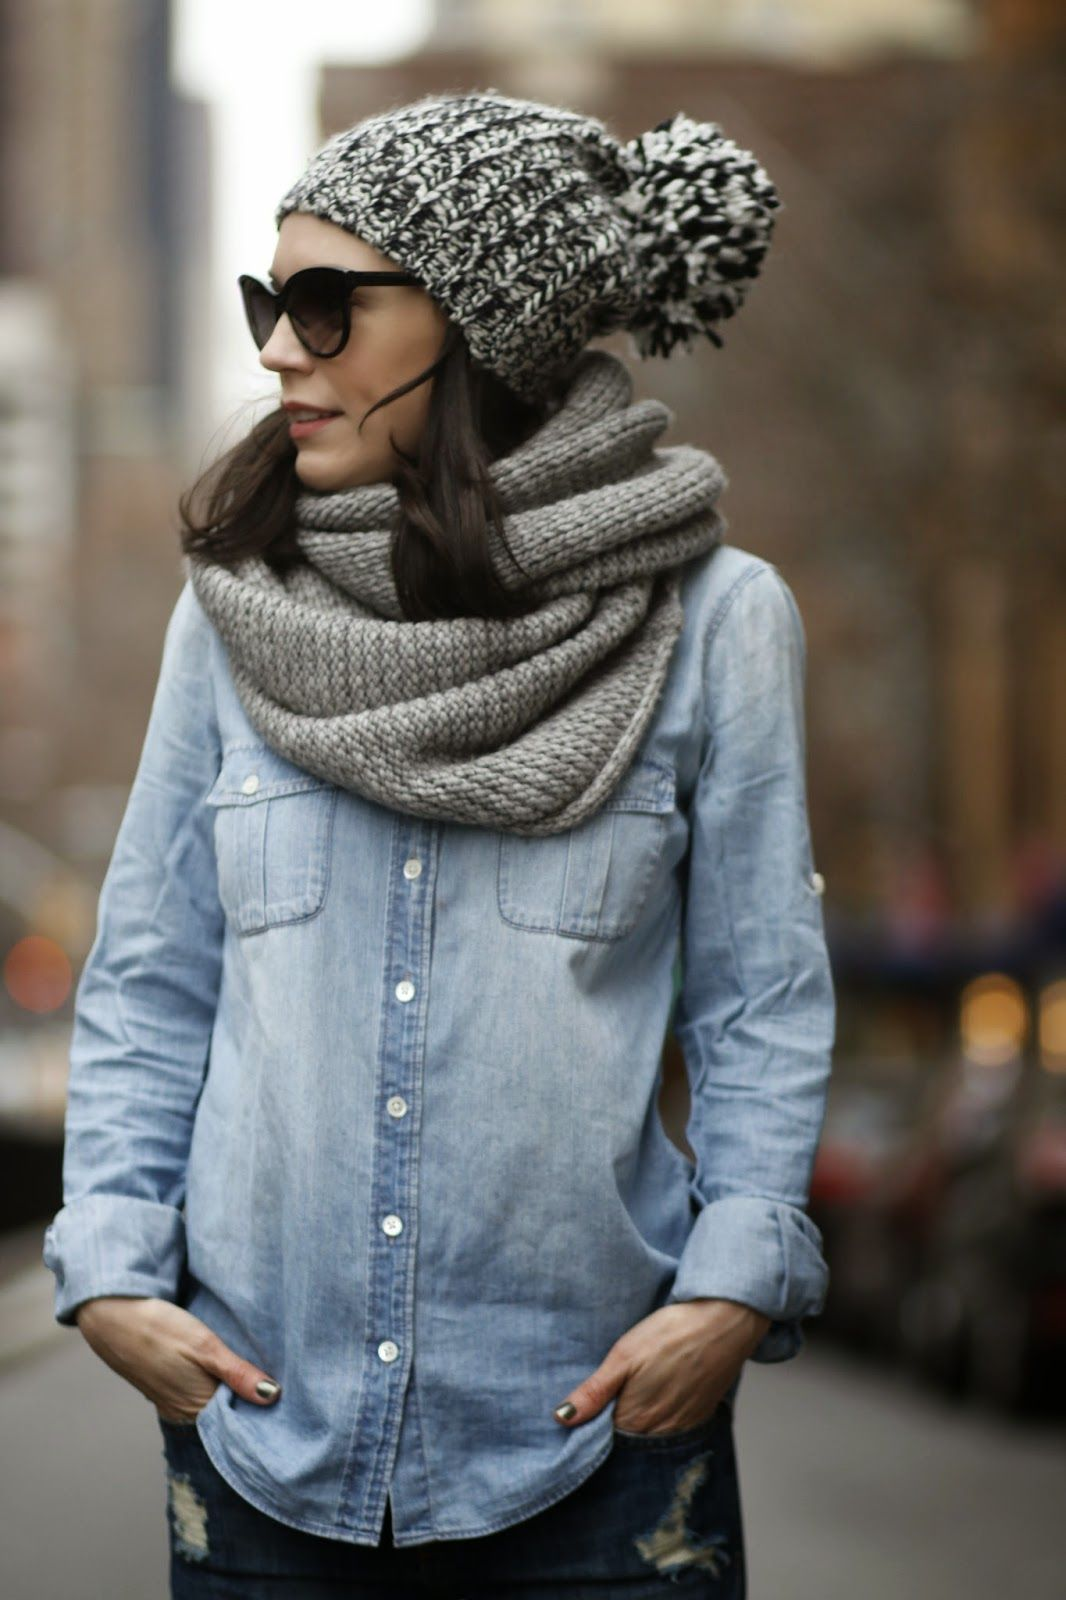 037f9c14cf87fc Faux Fur With Distressed Denim Scarf Outfits